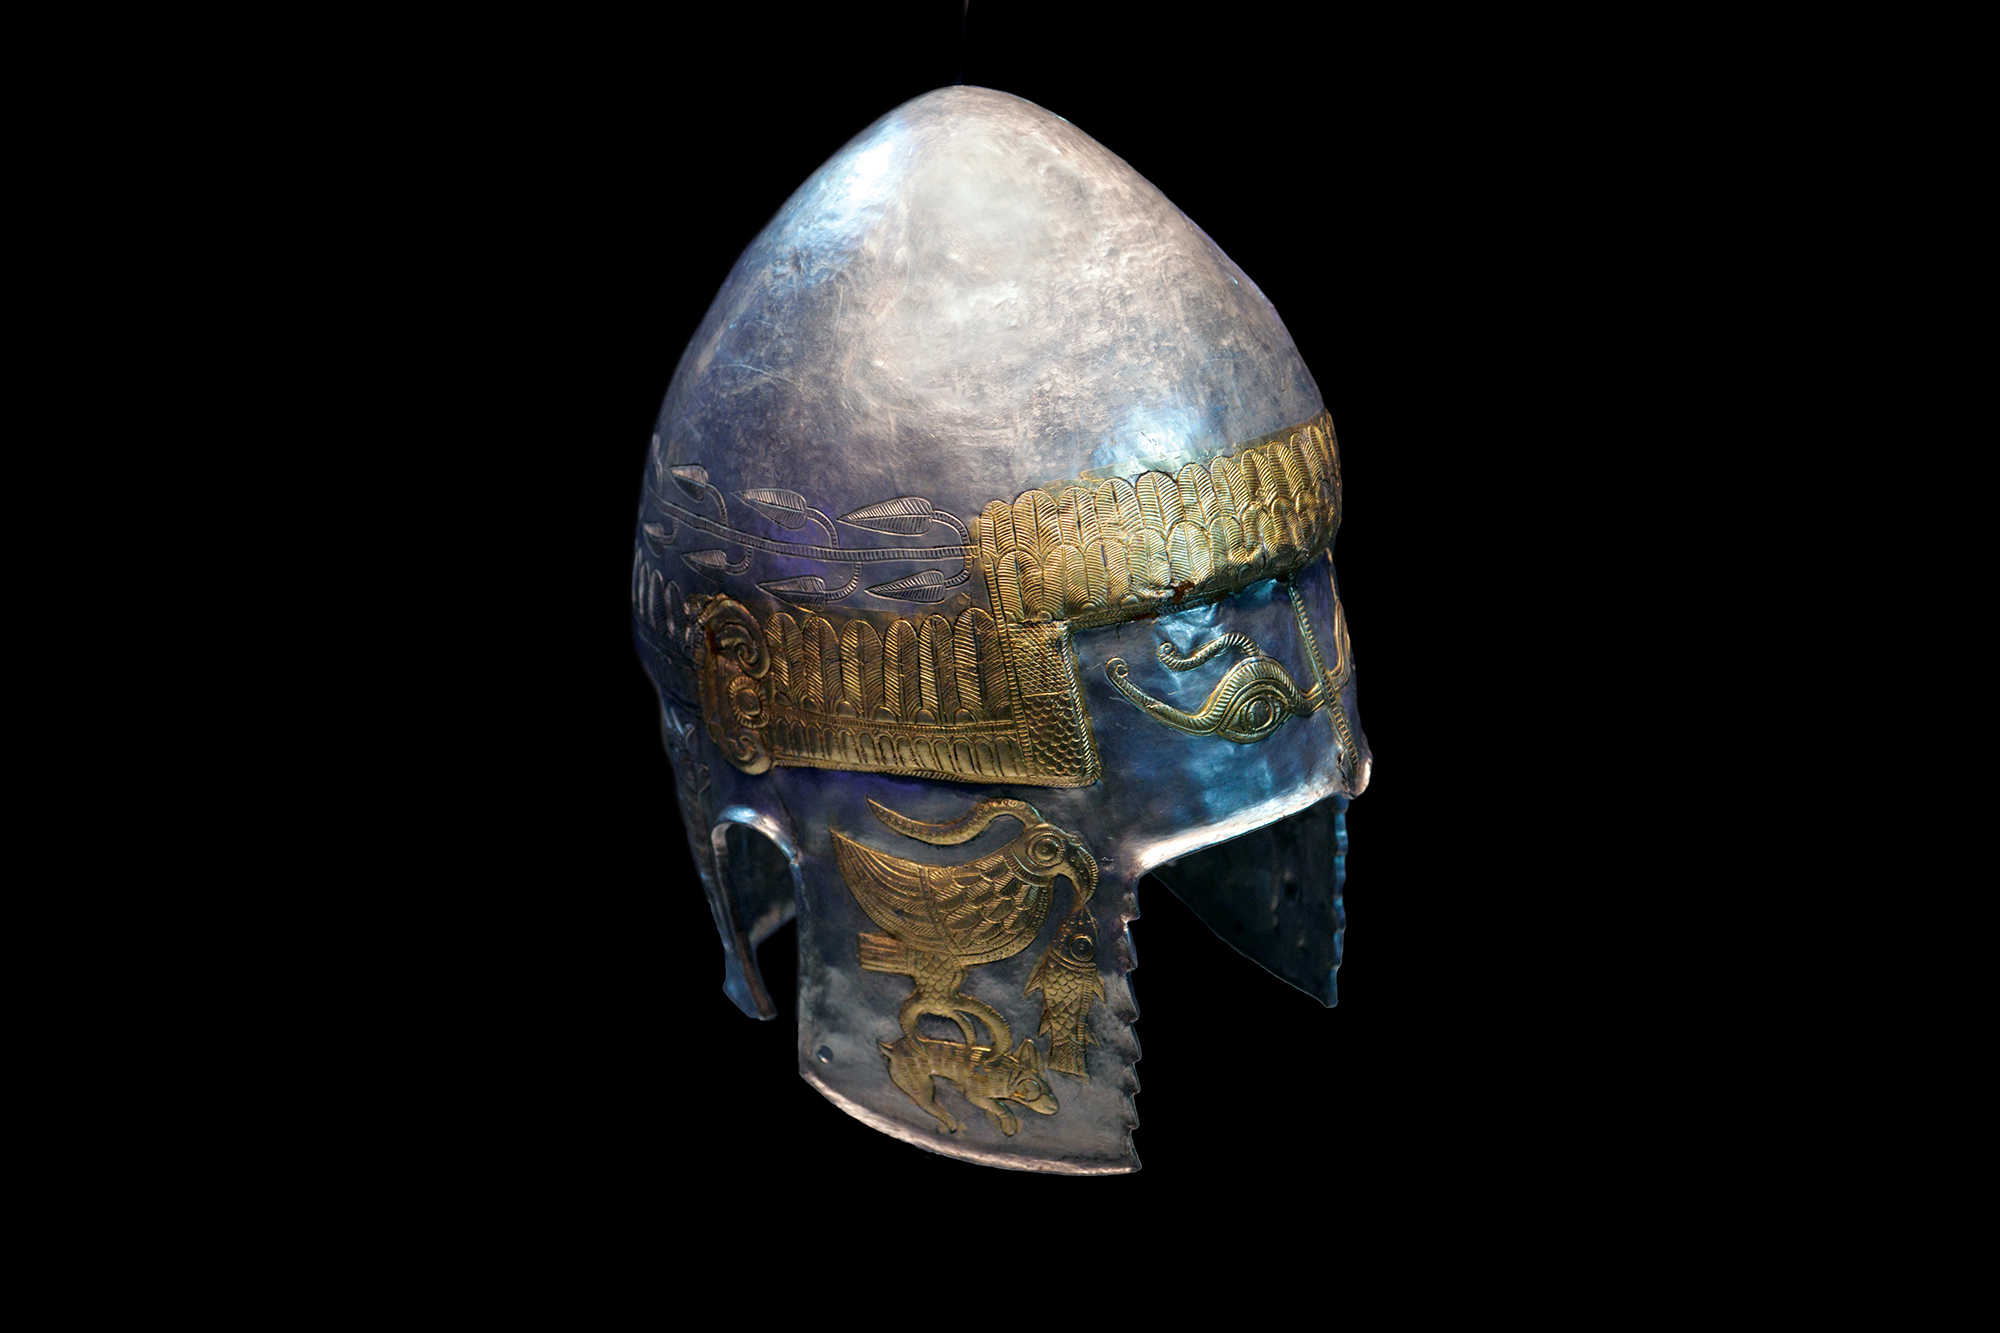 Photograph of an early European helmet.